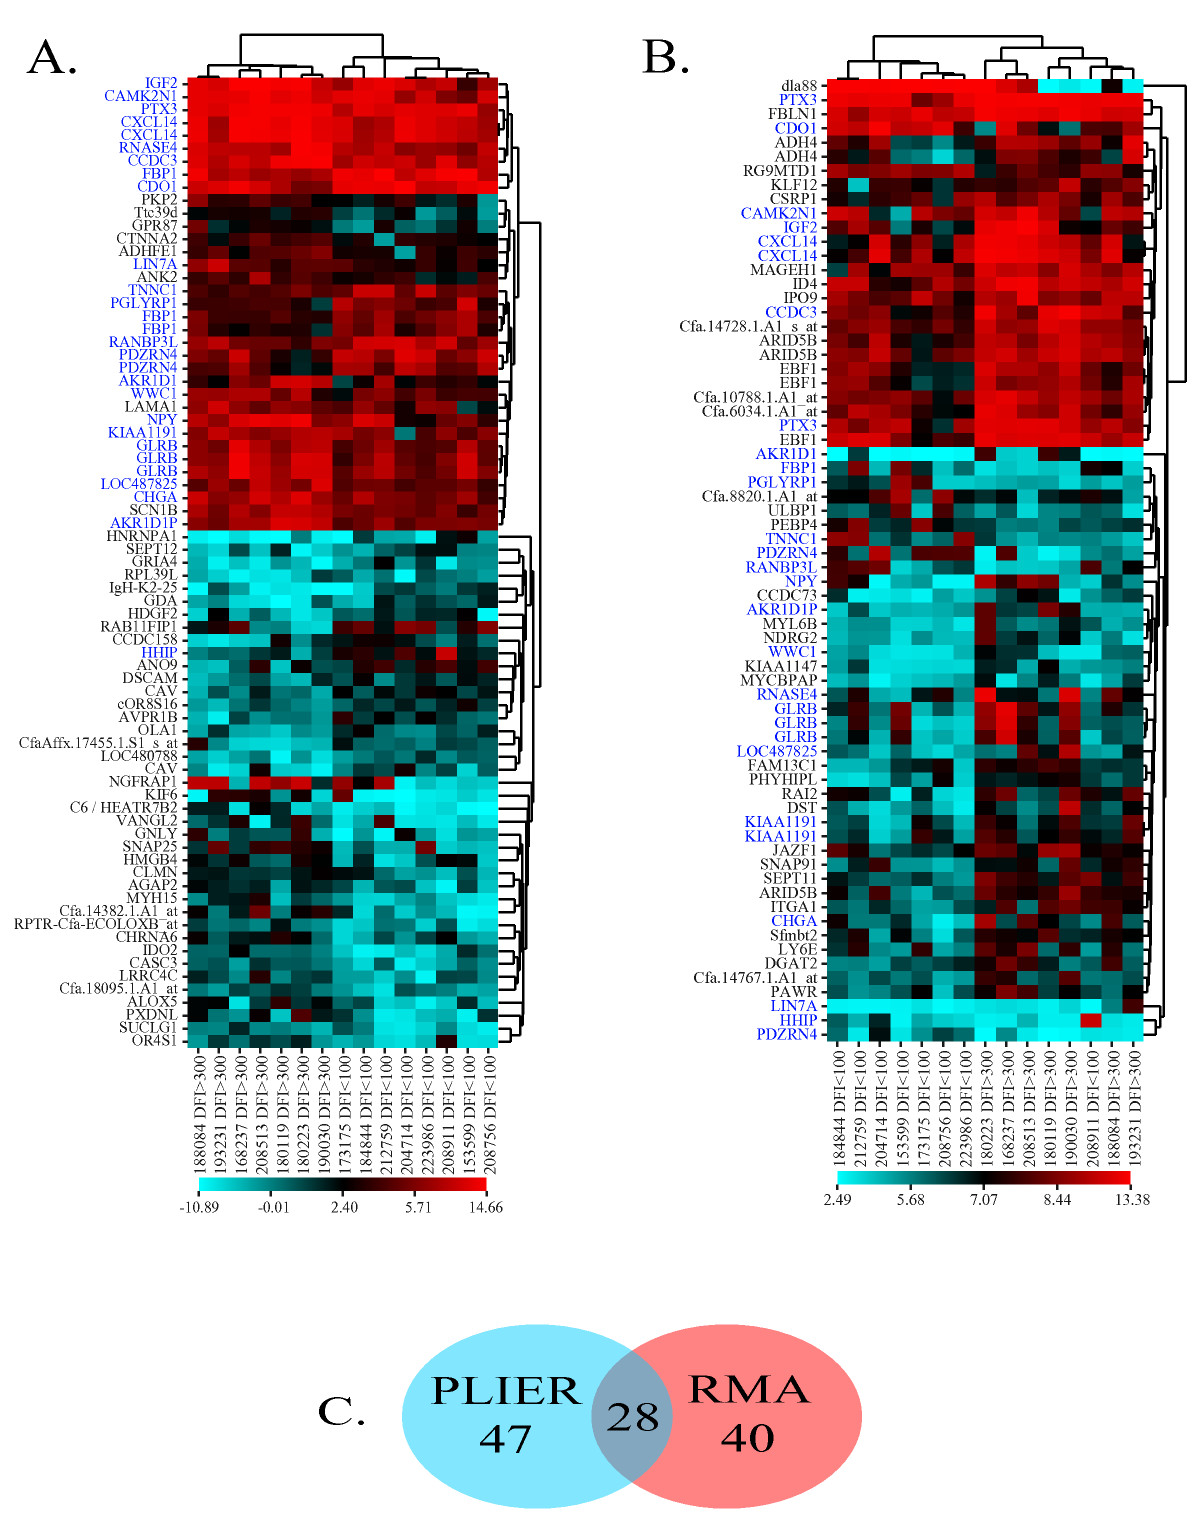 http://static-content.springer.com/image/art%3A10.1186%2F1471-2407-10-506/MediaObjects/12885_2010_Article_2305_Fig1_HTML.jpg